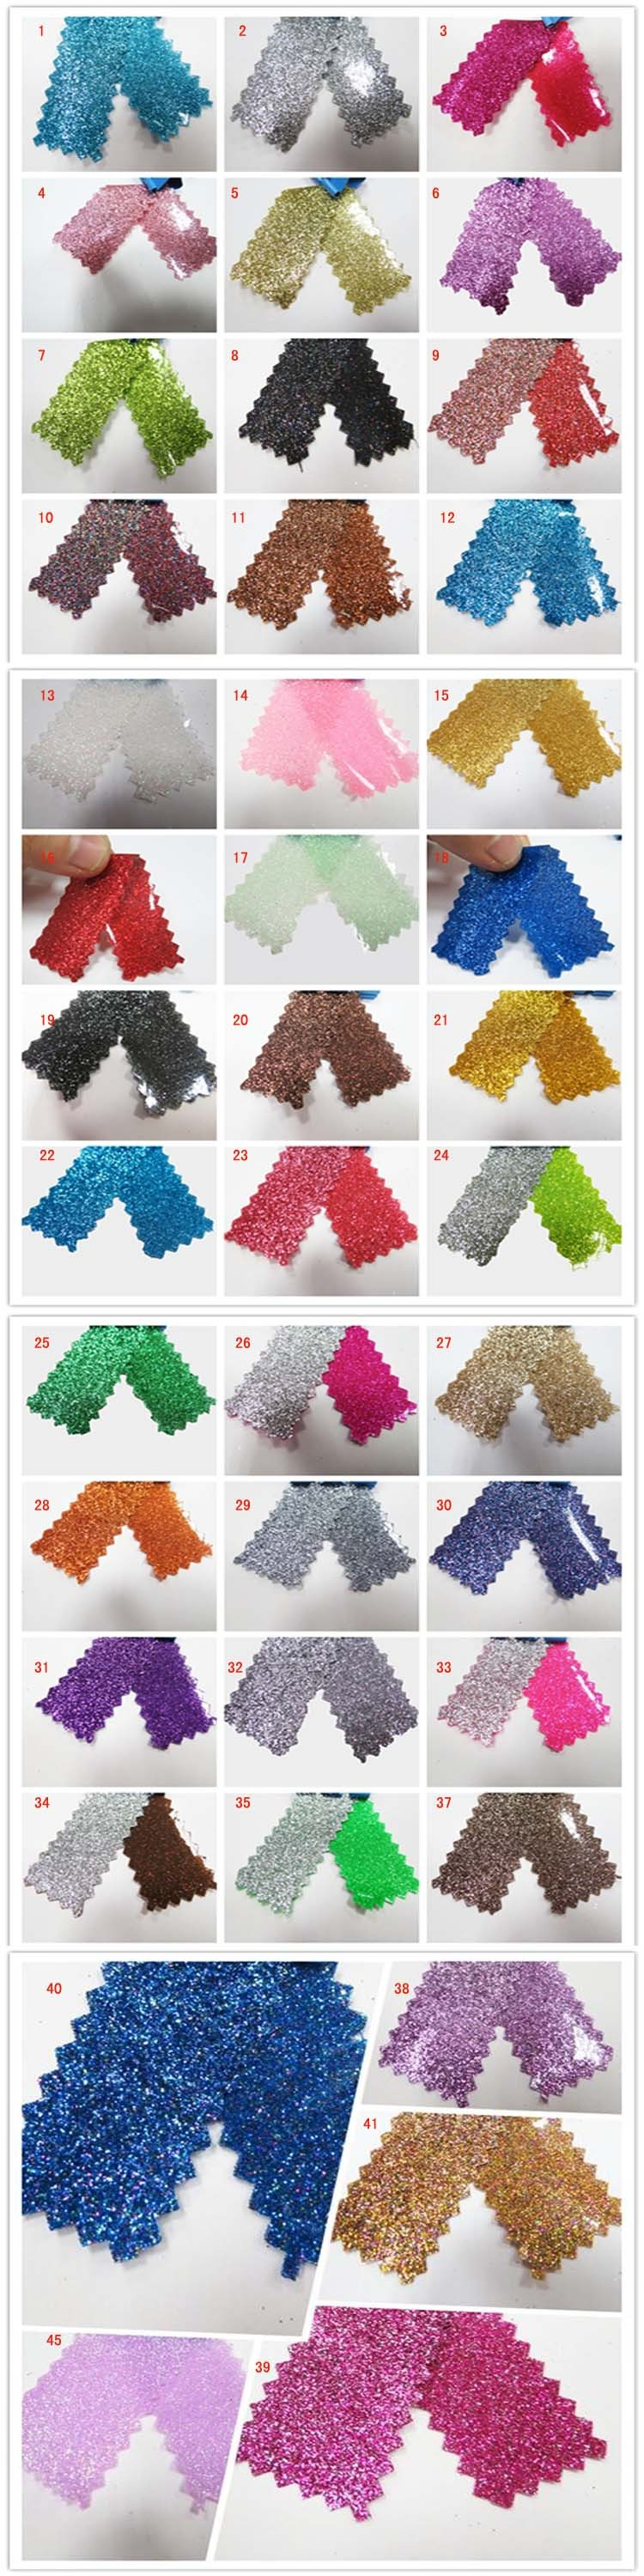 familiar with ODM colorful/many different colors bag making material waterproof bag material